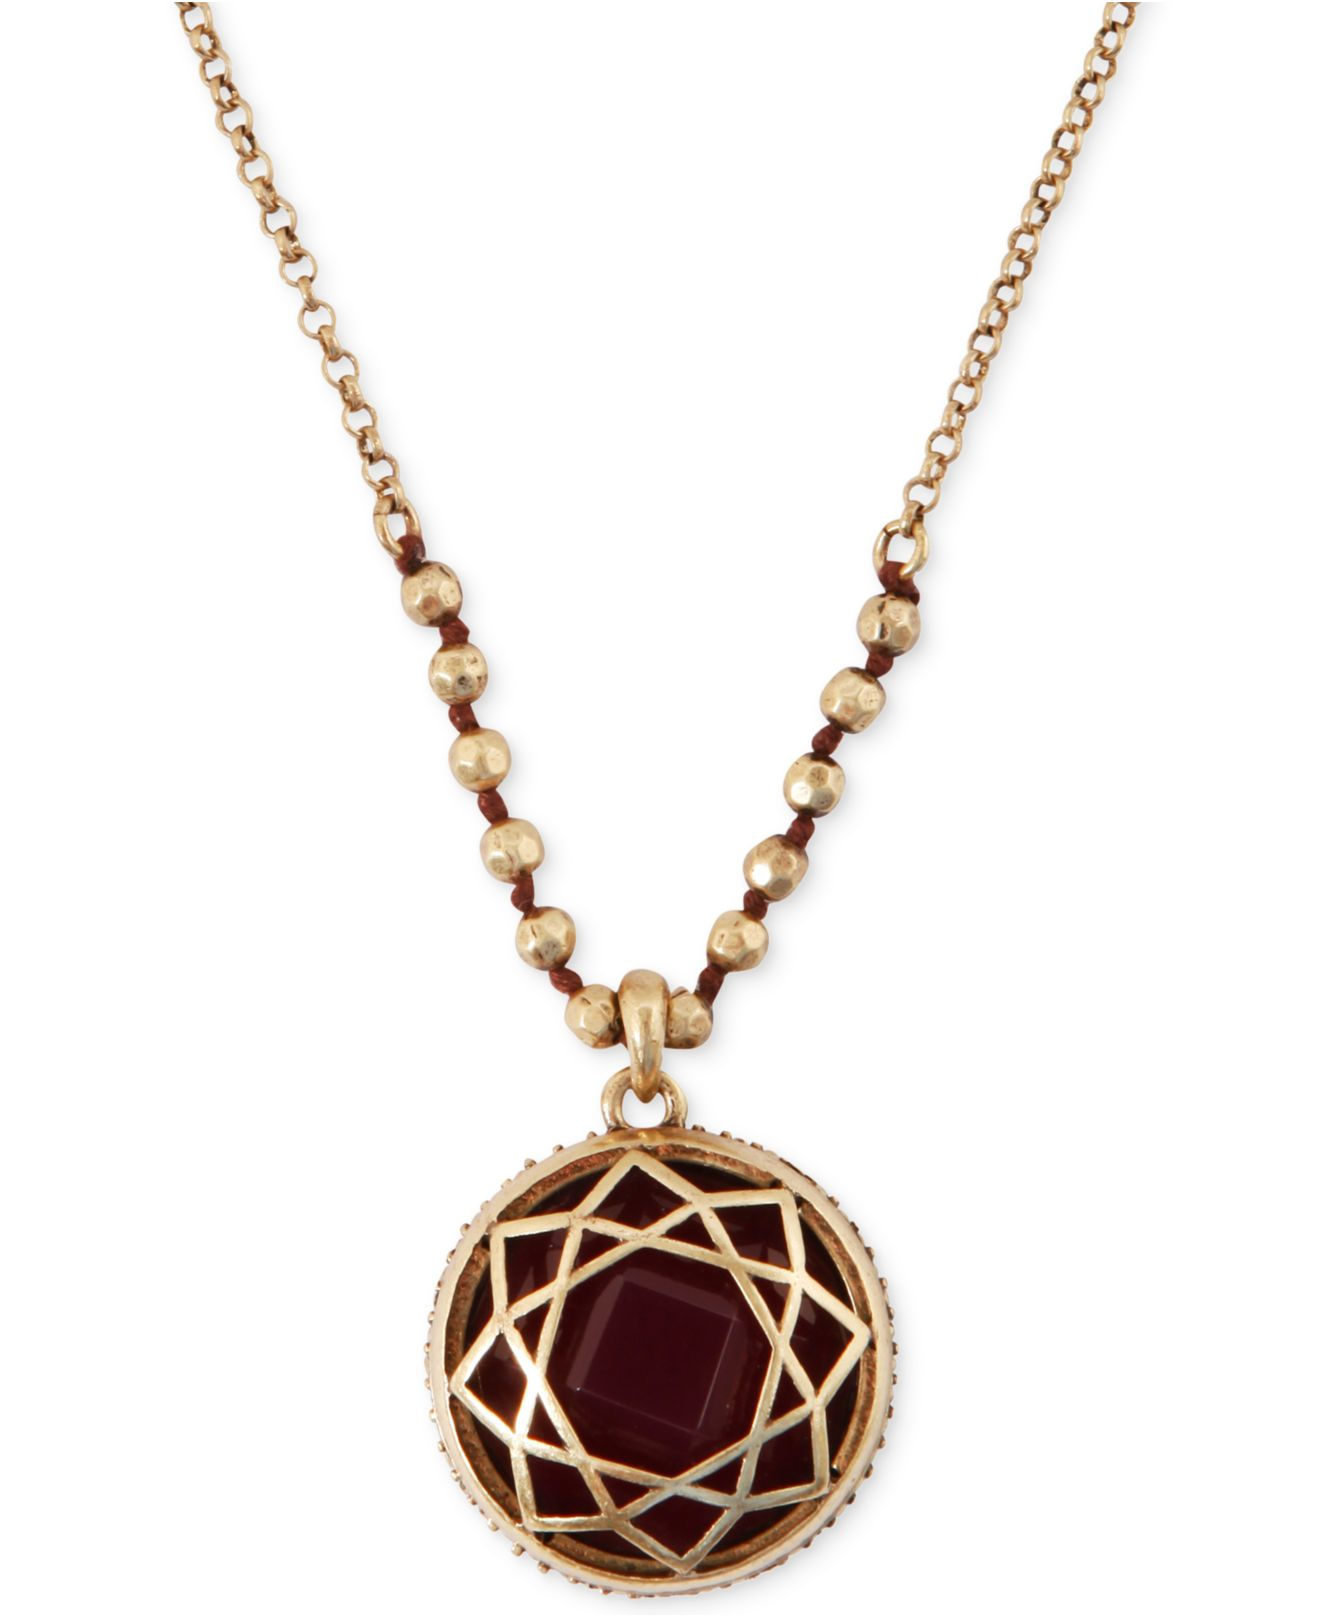 Lyst lucky brand gold tone red stone pendant necklace in metallic gallery aloadofball Gallery